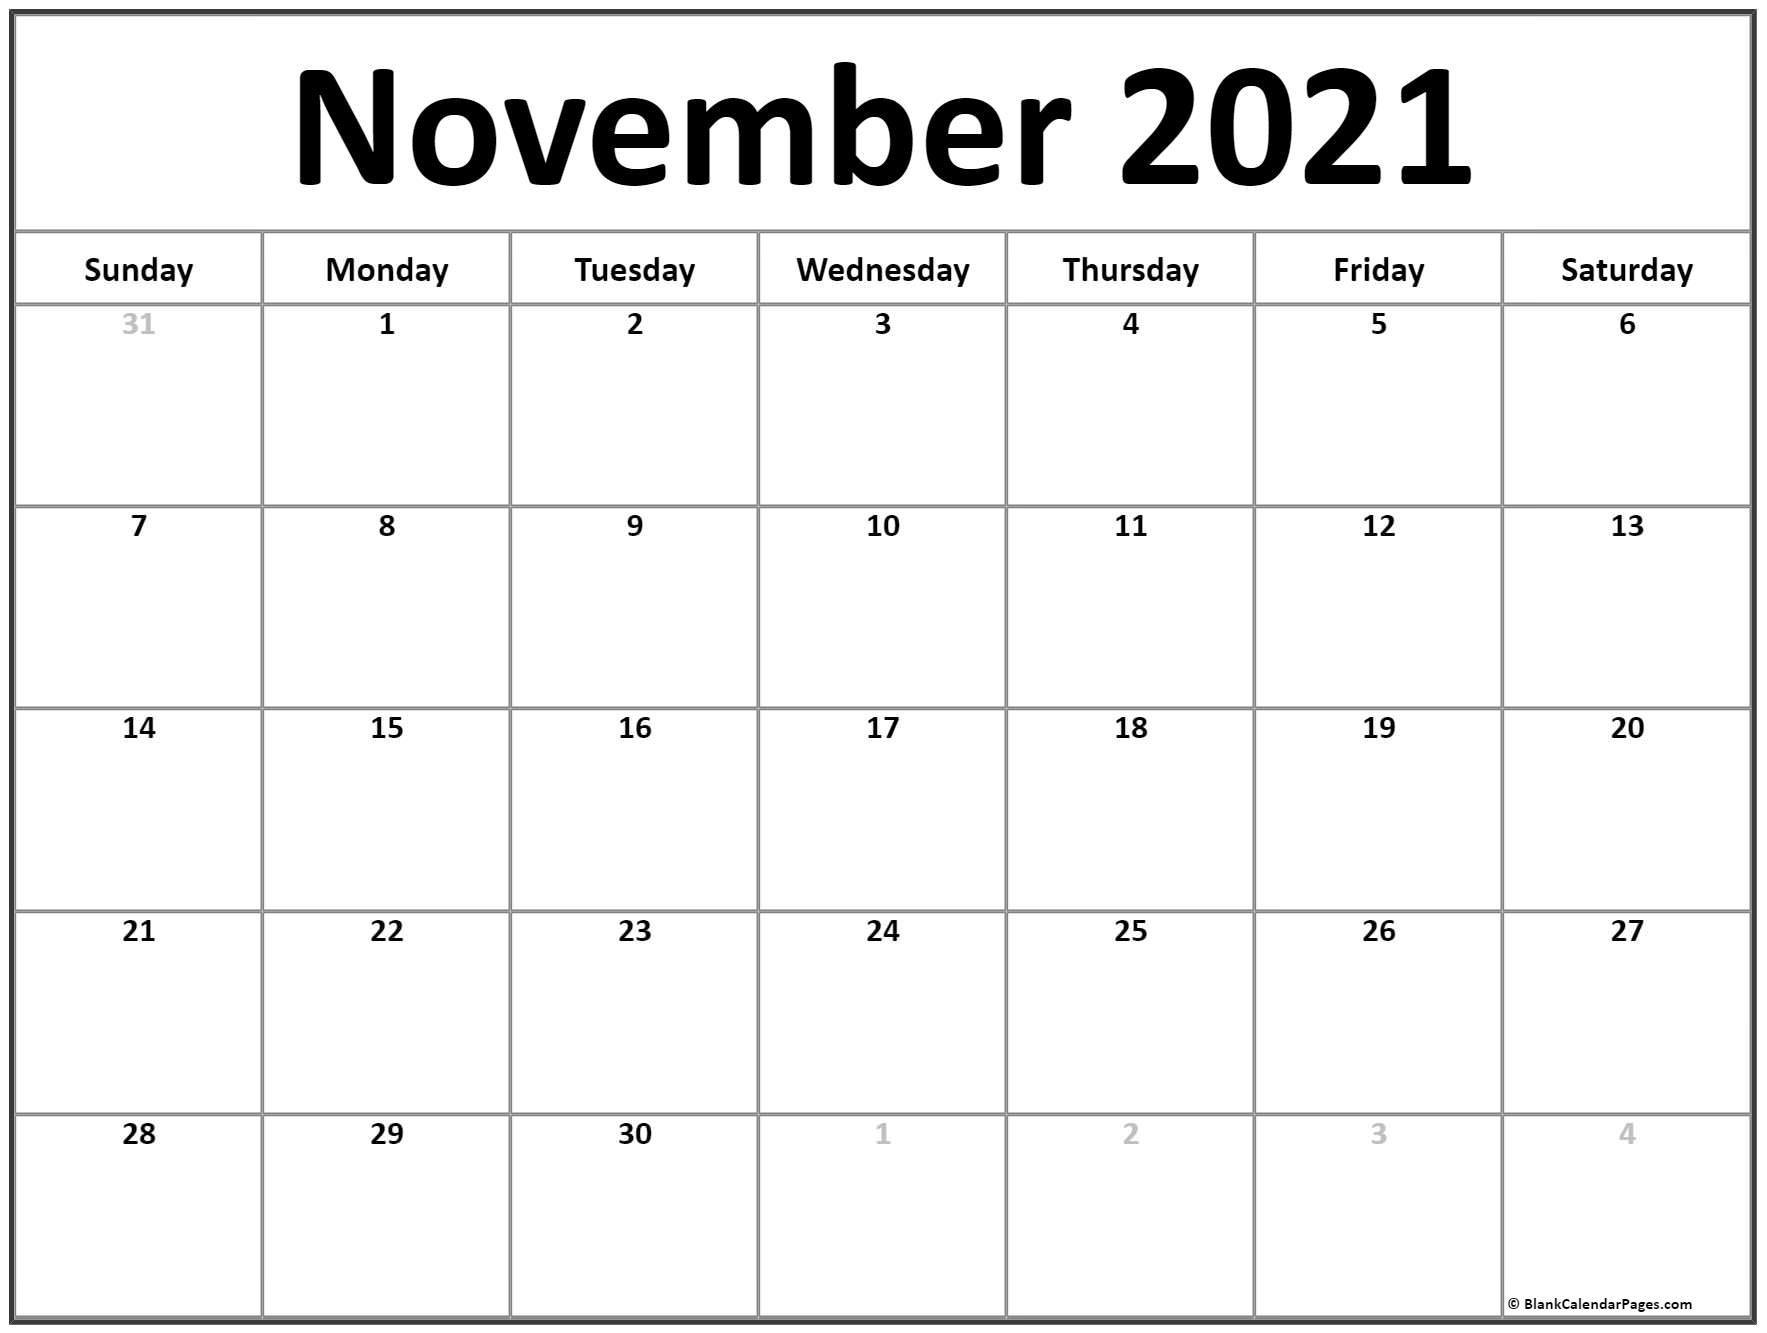 Catch November 2021 Calendar Template Event That I Can Type On